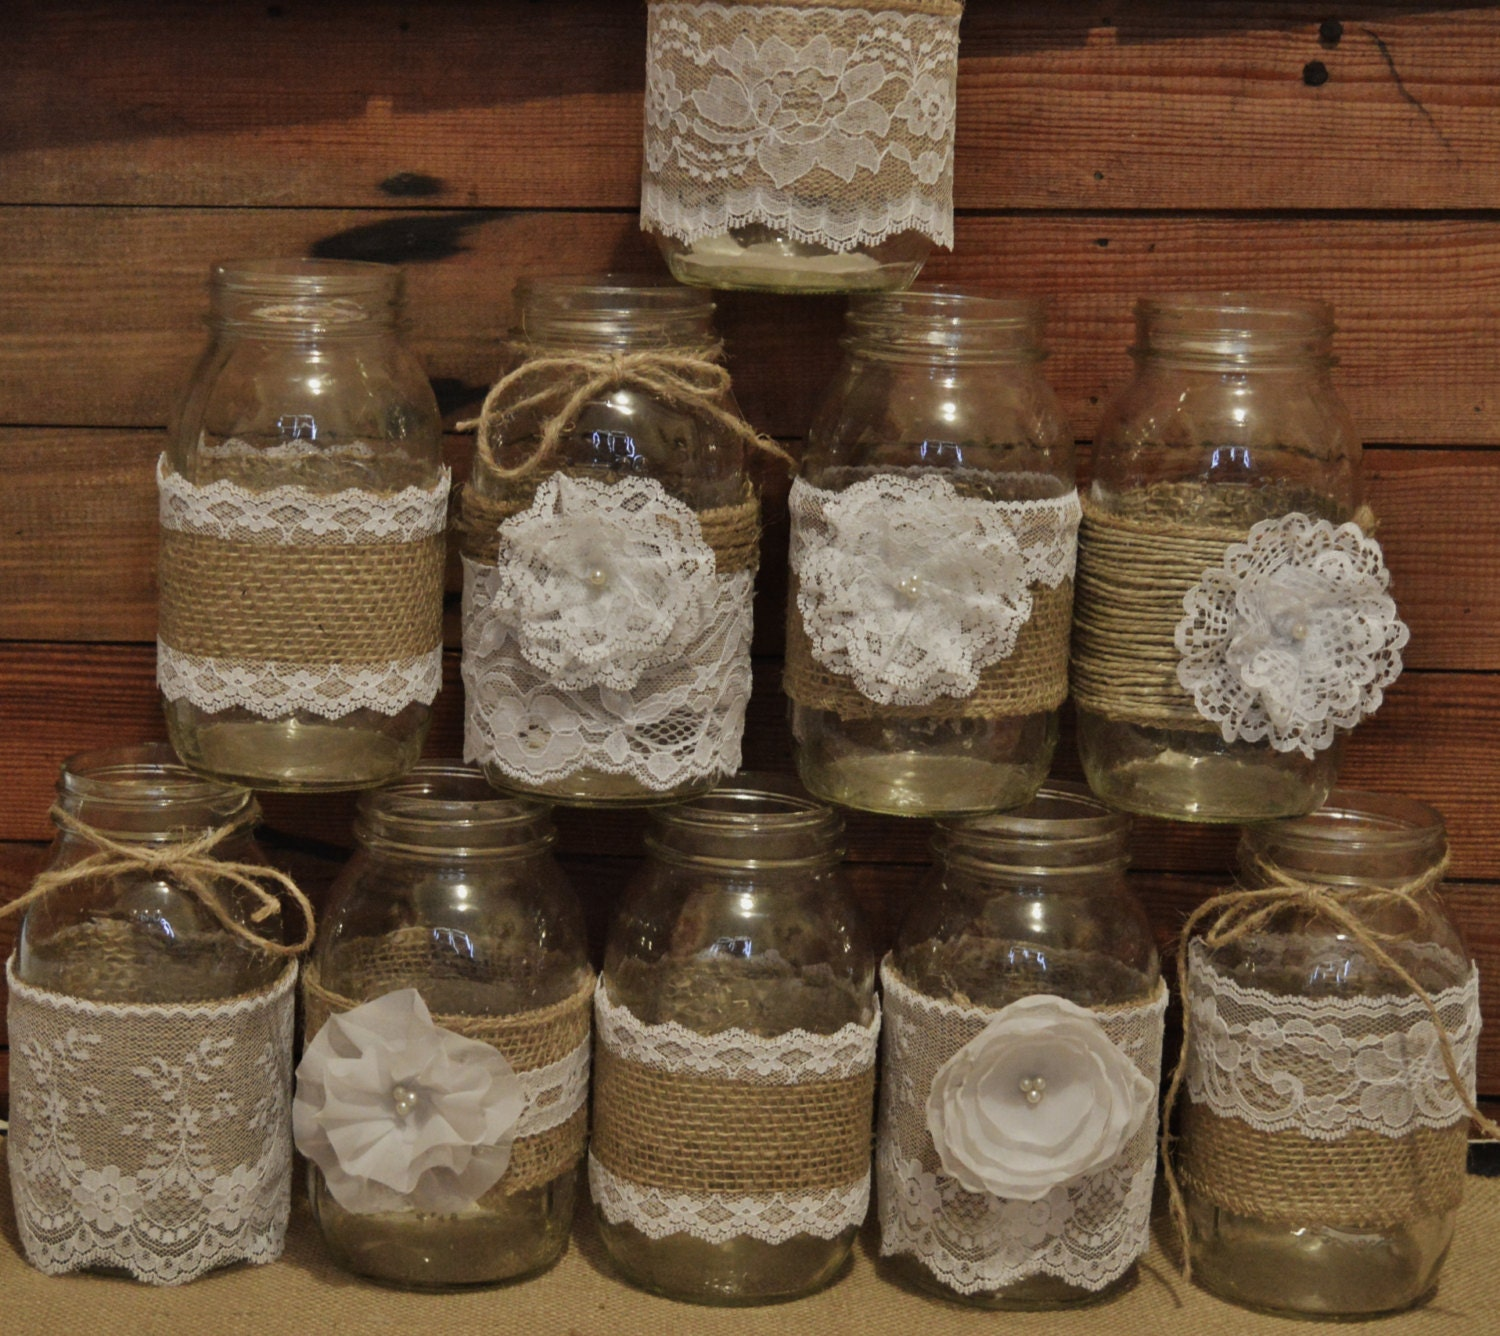 Rustic Jars For Wedding: 10 Mason Jar Sleeves Wedding Centerpieces Rustic Wedding